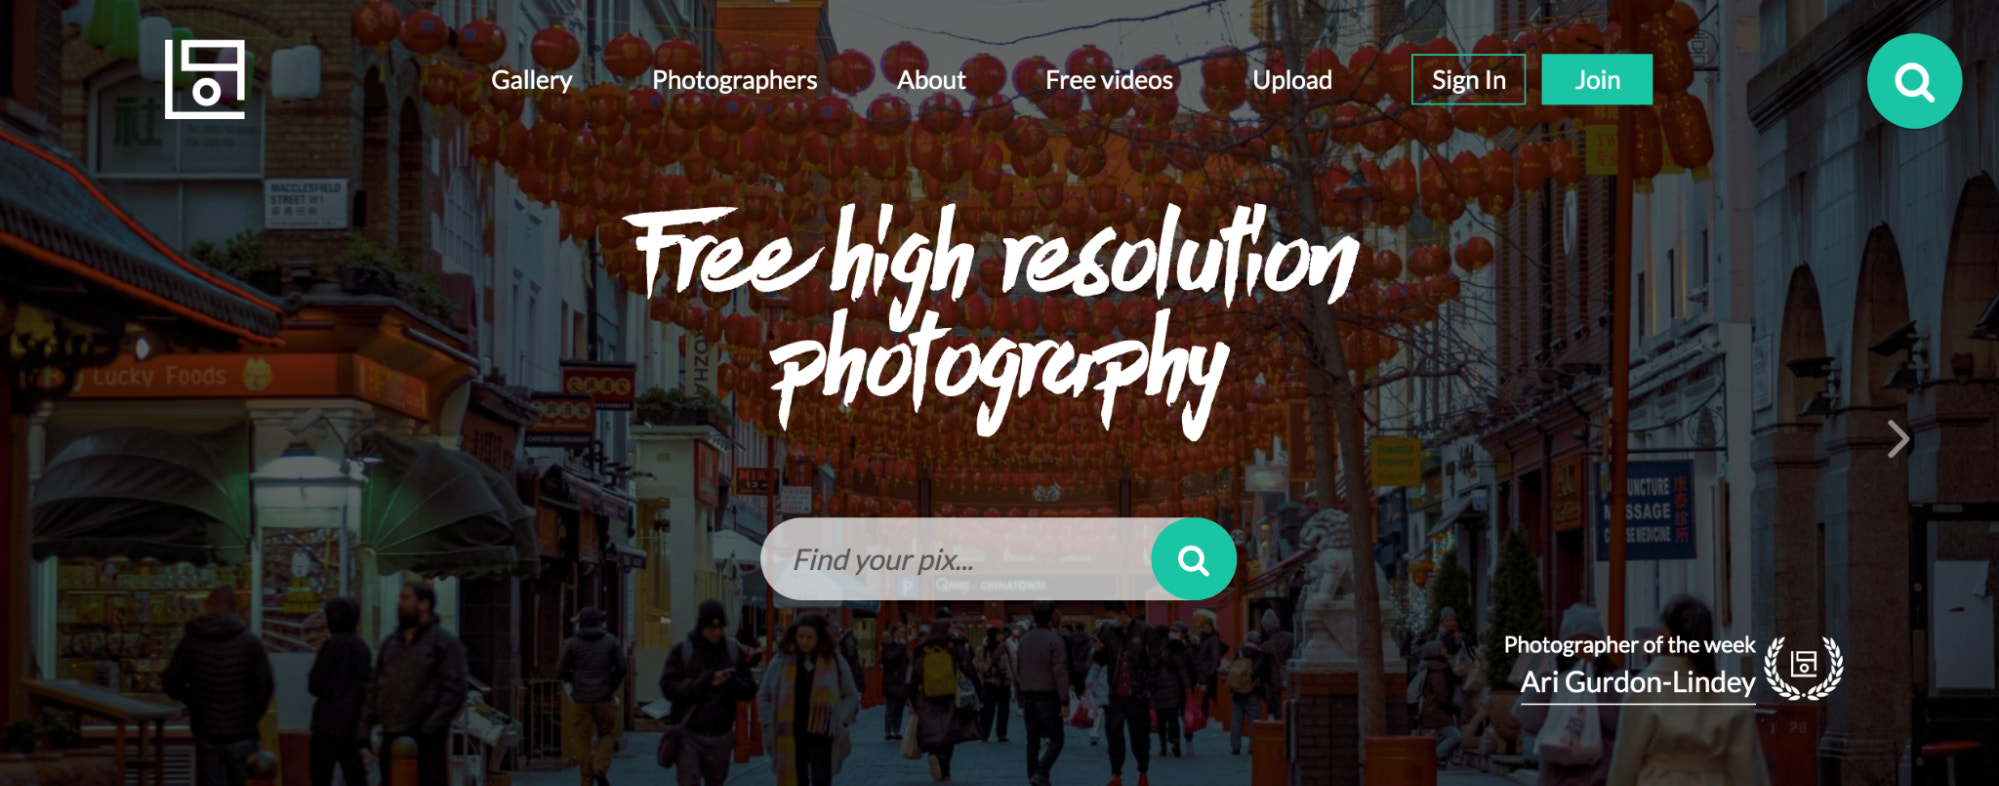 Life of pix free stock photo site homepage